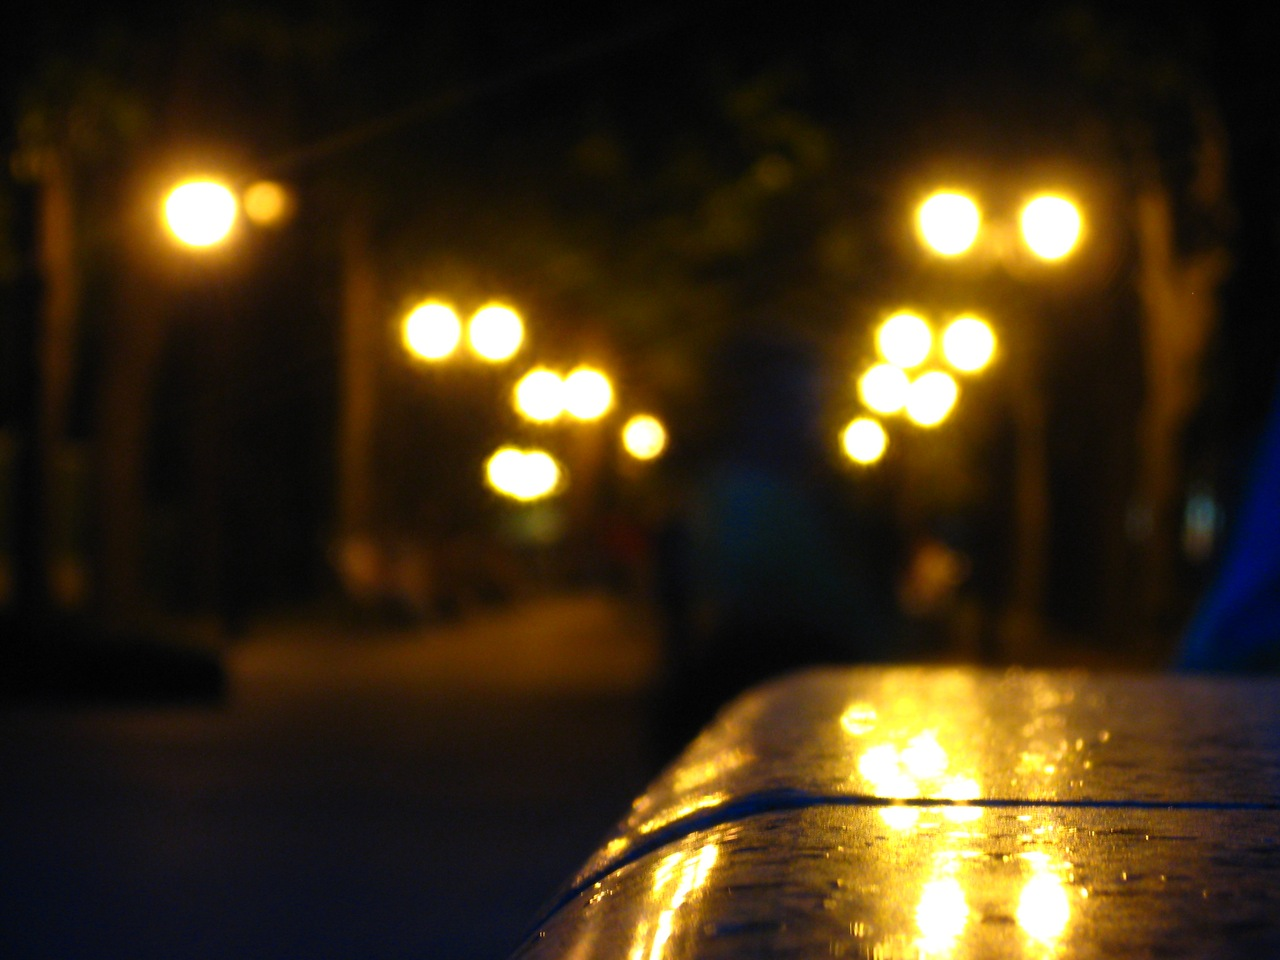 Evening lights, Blur, Bokeh, Evening, Lights, HQ Photo